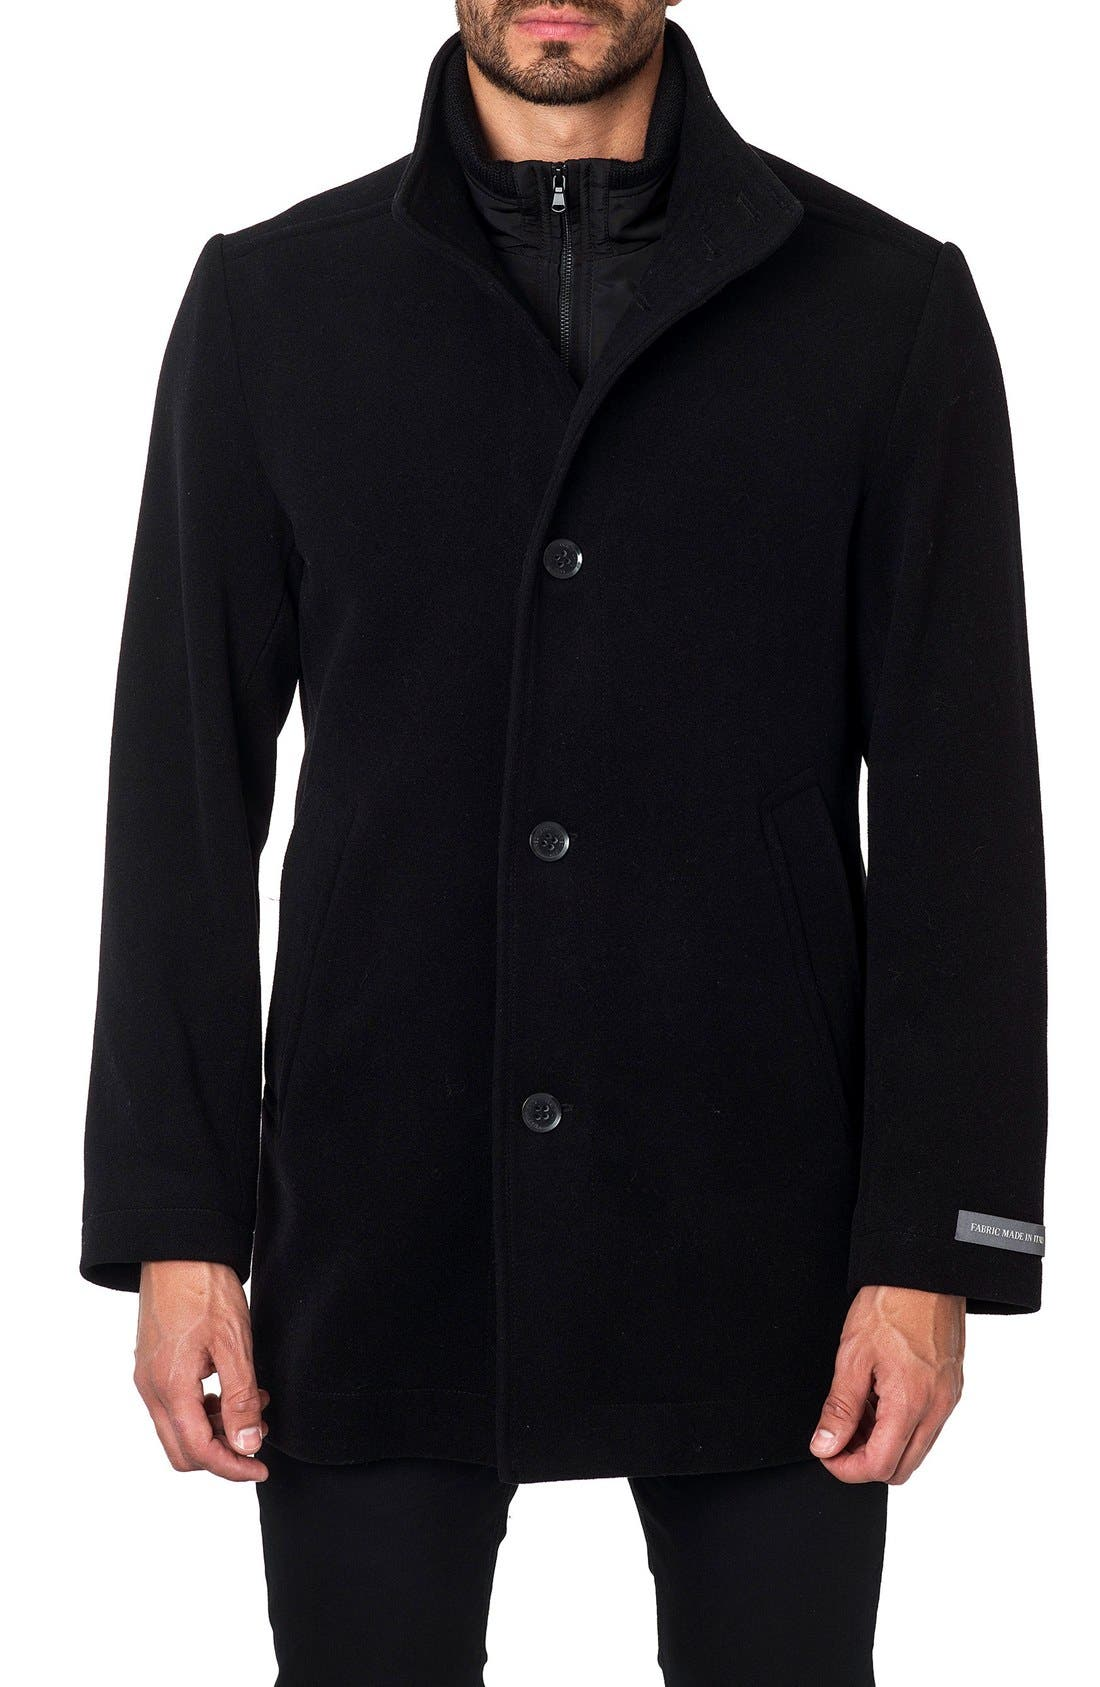 Alternate Image 1 Selected - Jared Lang Wool Blend Coat